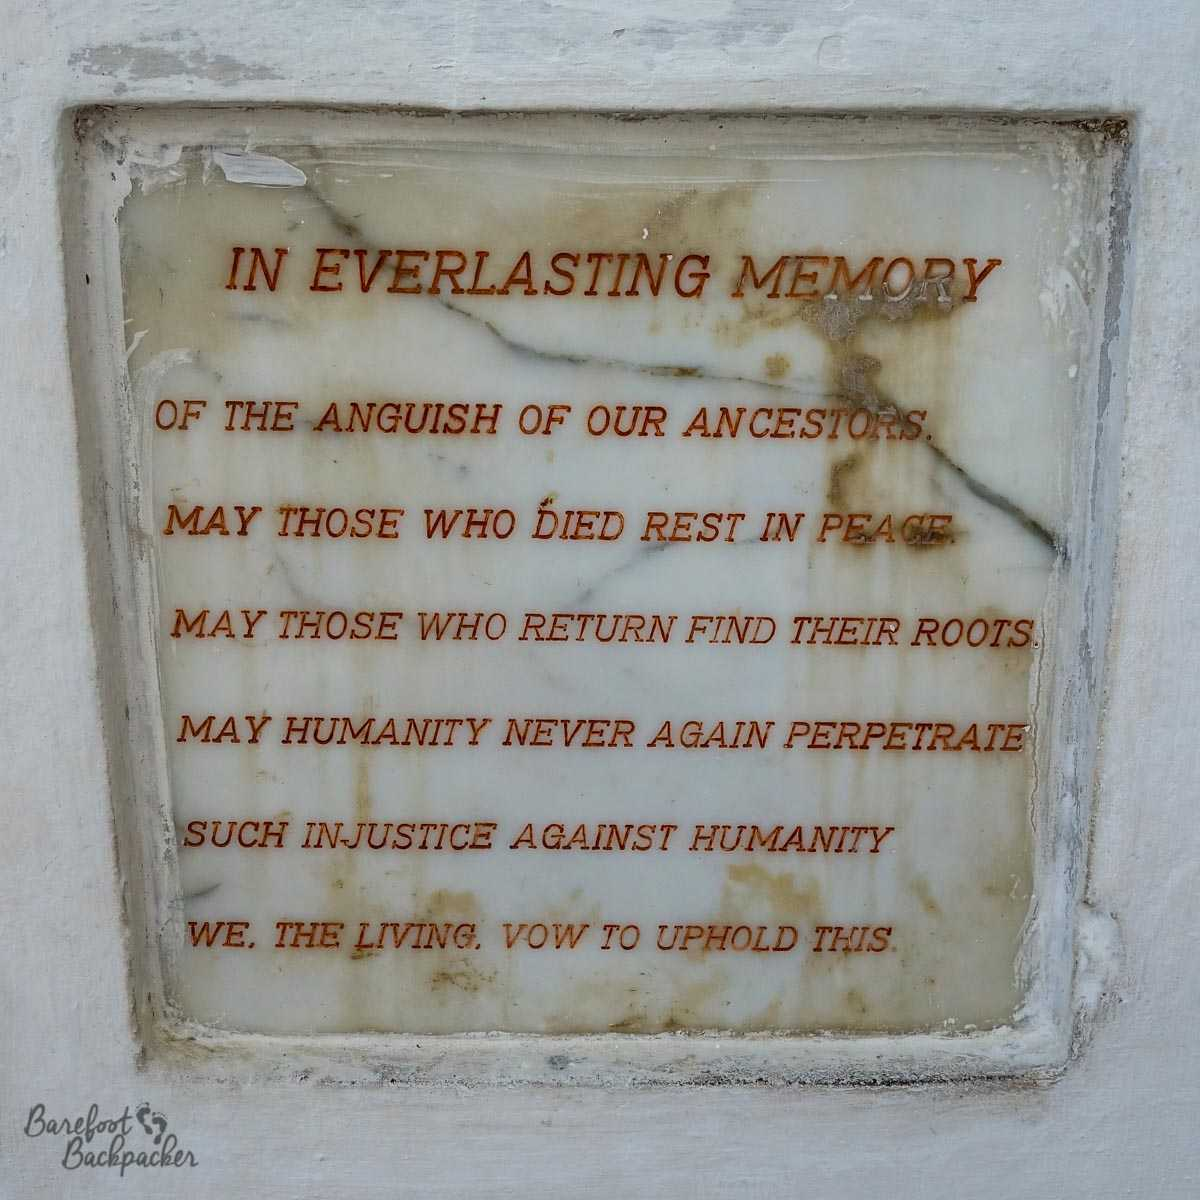 Plaque at Cape Coast Castle, decrying the role African Empires played in the Slave Trade. It reads: 'In everlasting memory of the anguish of our ancestors. May those who died rest in peace. May those who return find their roots. May humanity never again perpetrate such injustice against humanity. We, the living, vow to uphold this.'